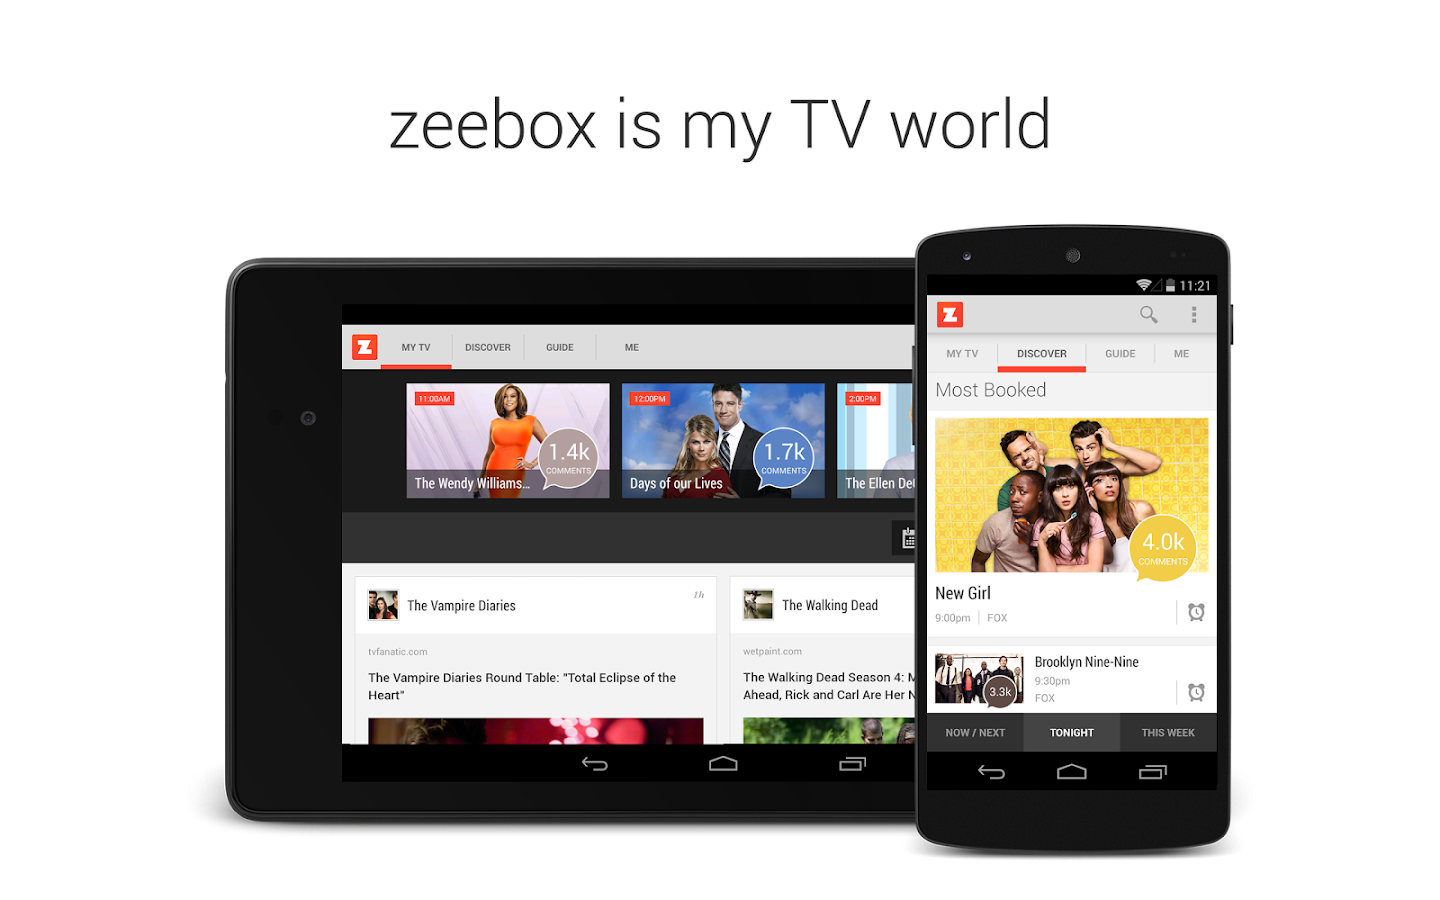 zeebox - My TV World - screenshot